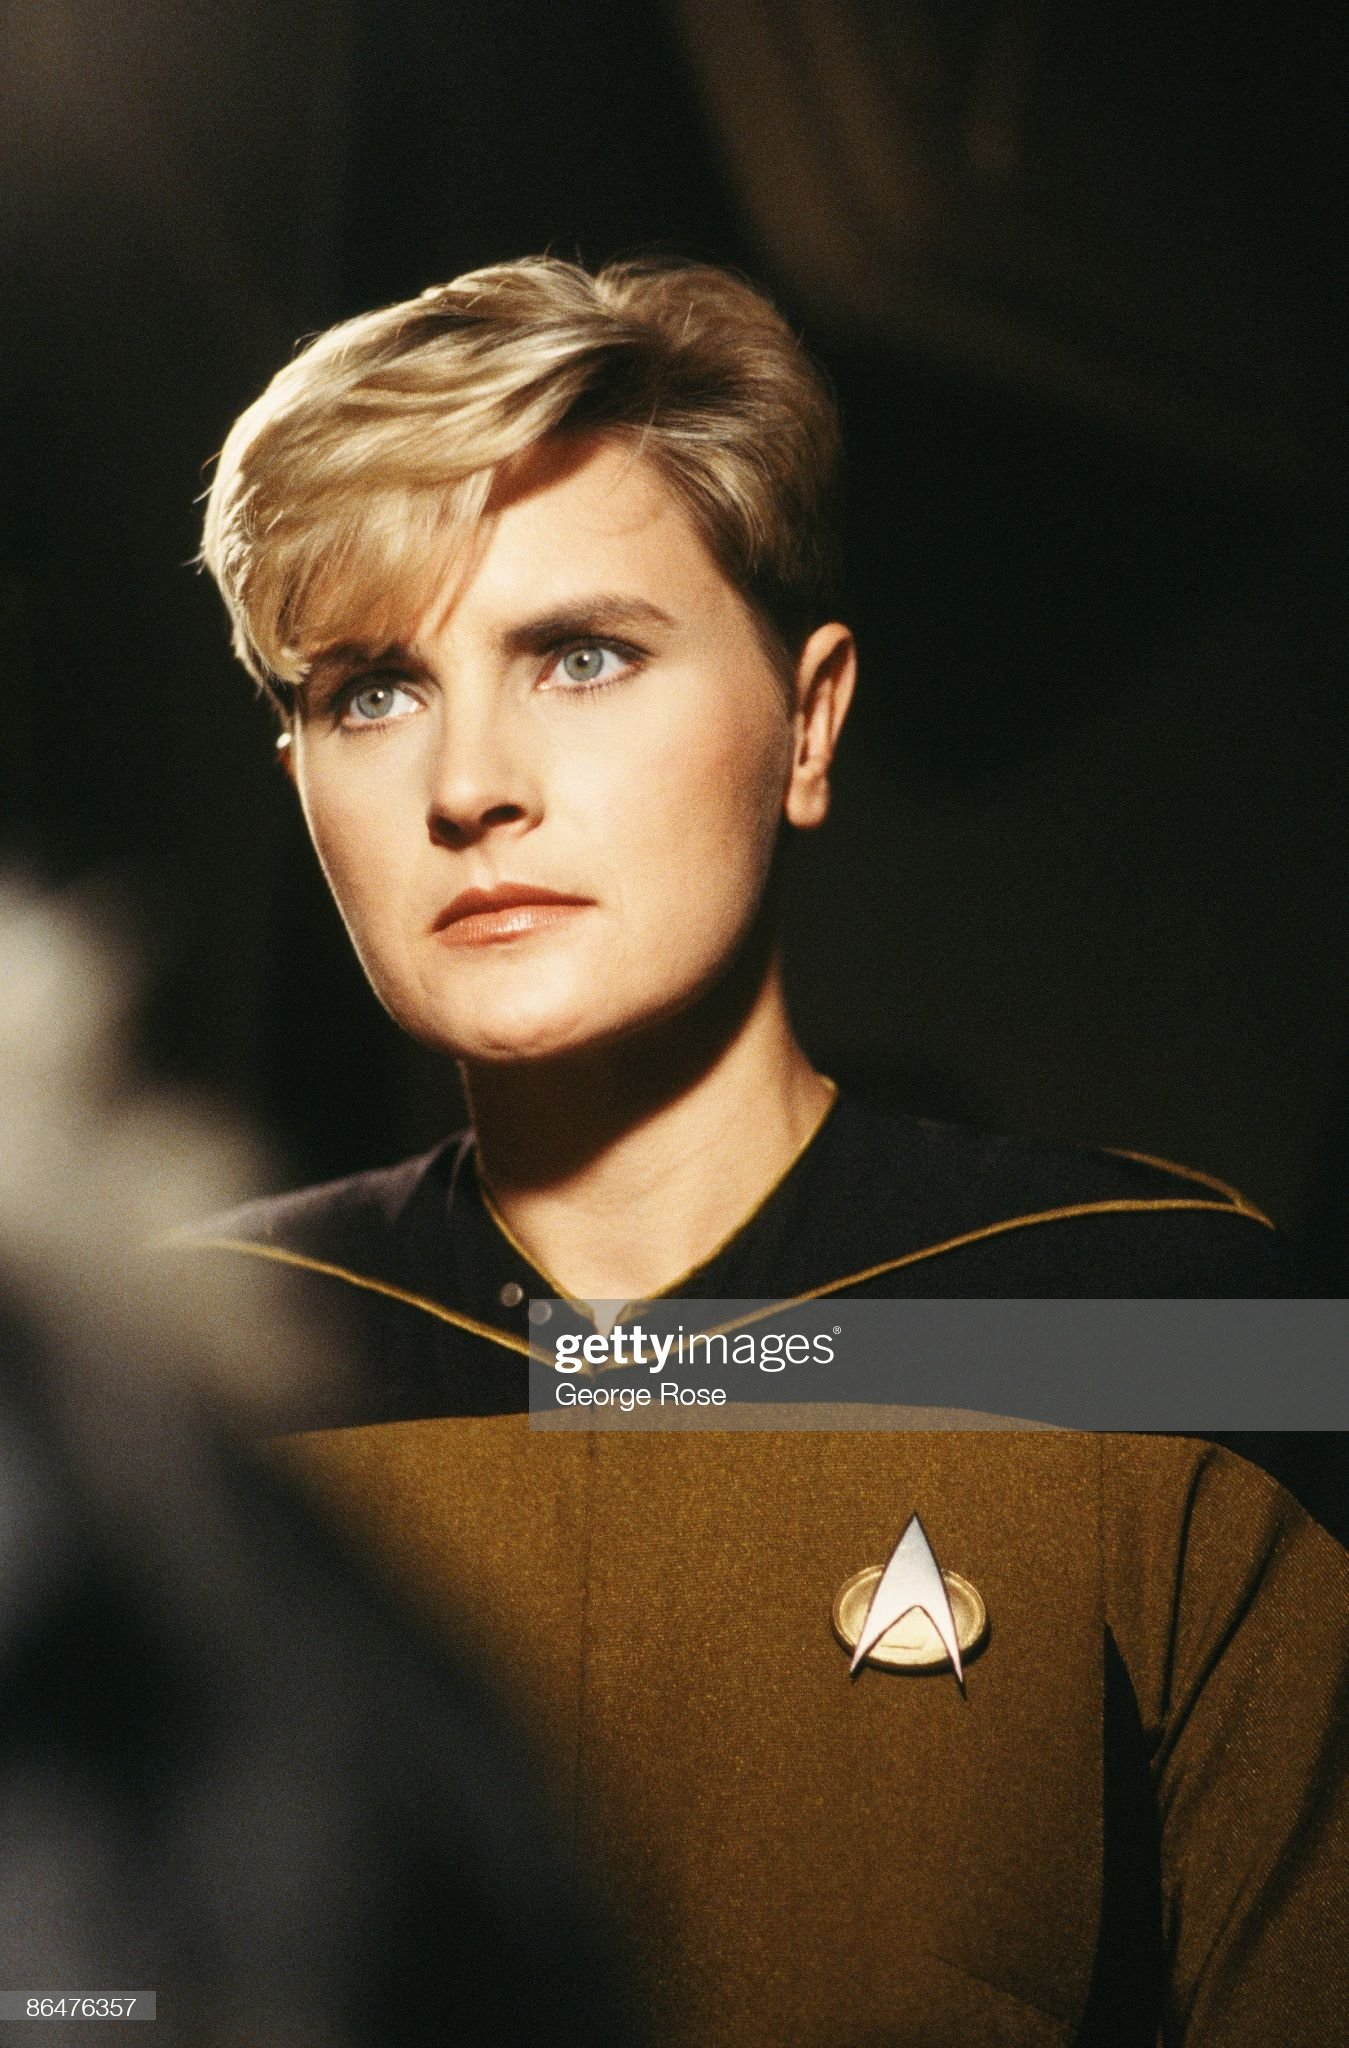 actress-denise-crosby-who-plays-security-officer-tasha-yar-on-the-hit-picture-id86476357